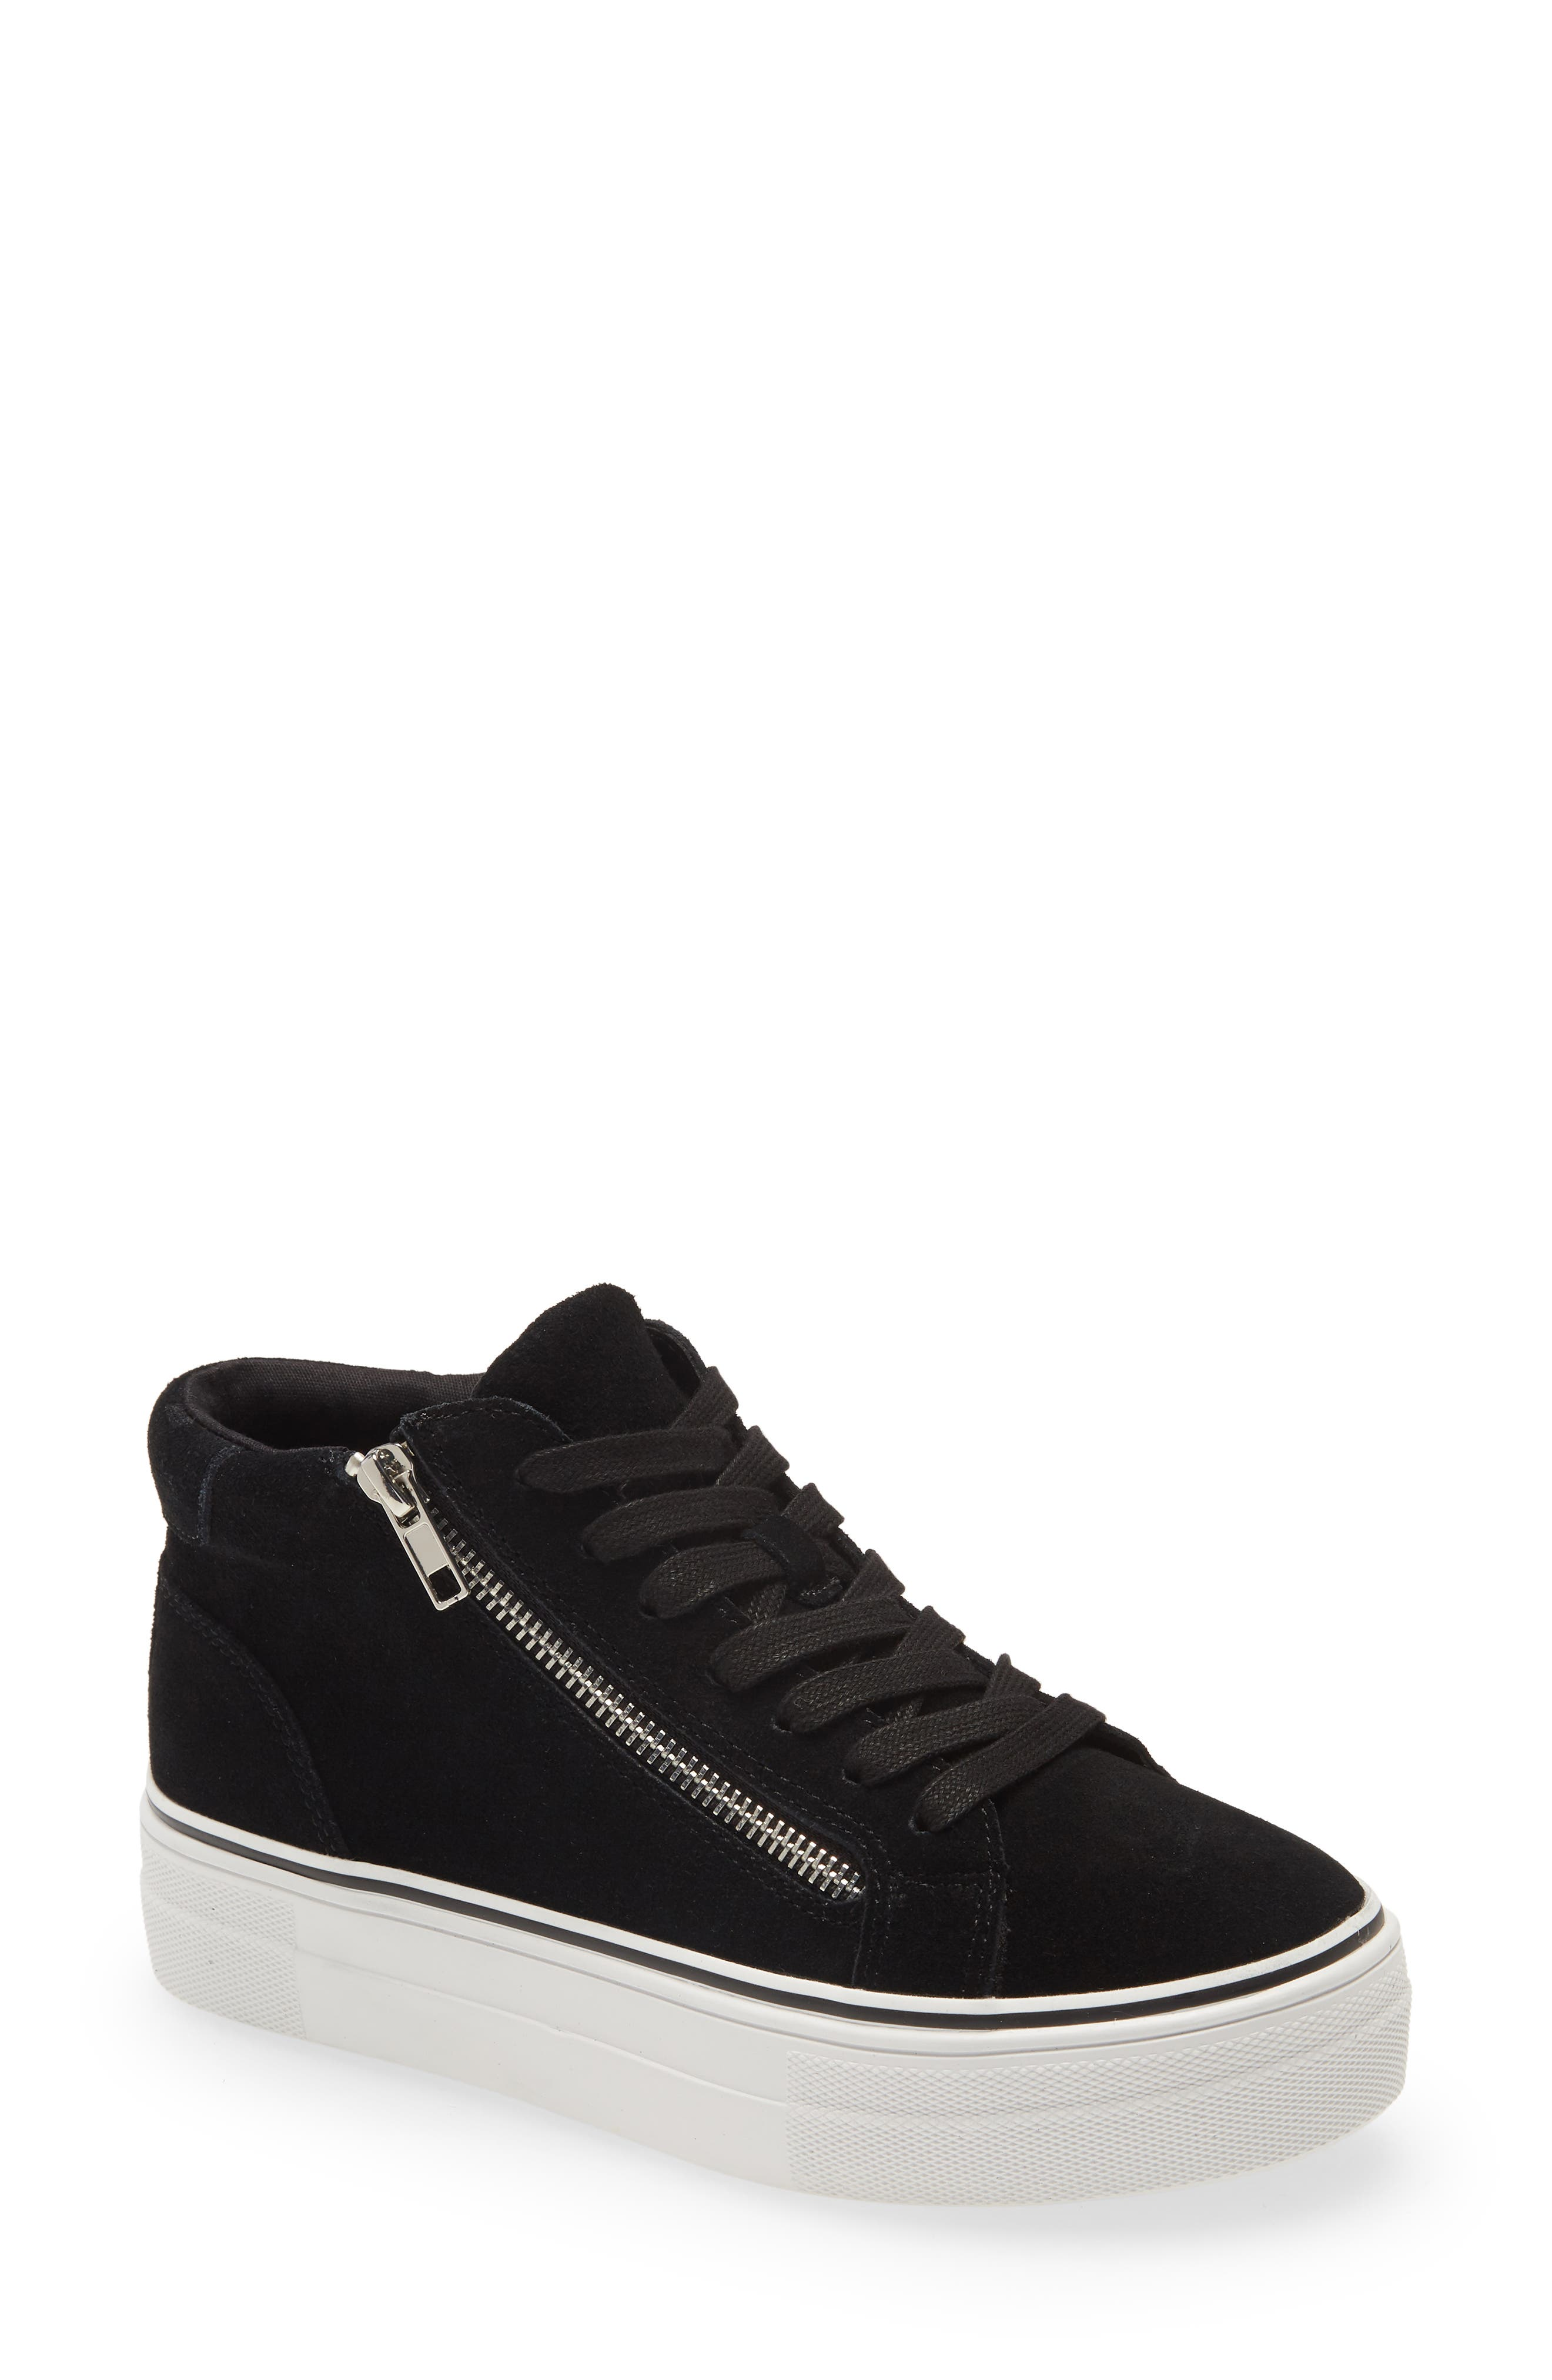 Image of Steve Madden Gryphon Suede High Top Sneaker